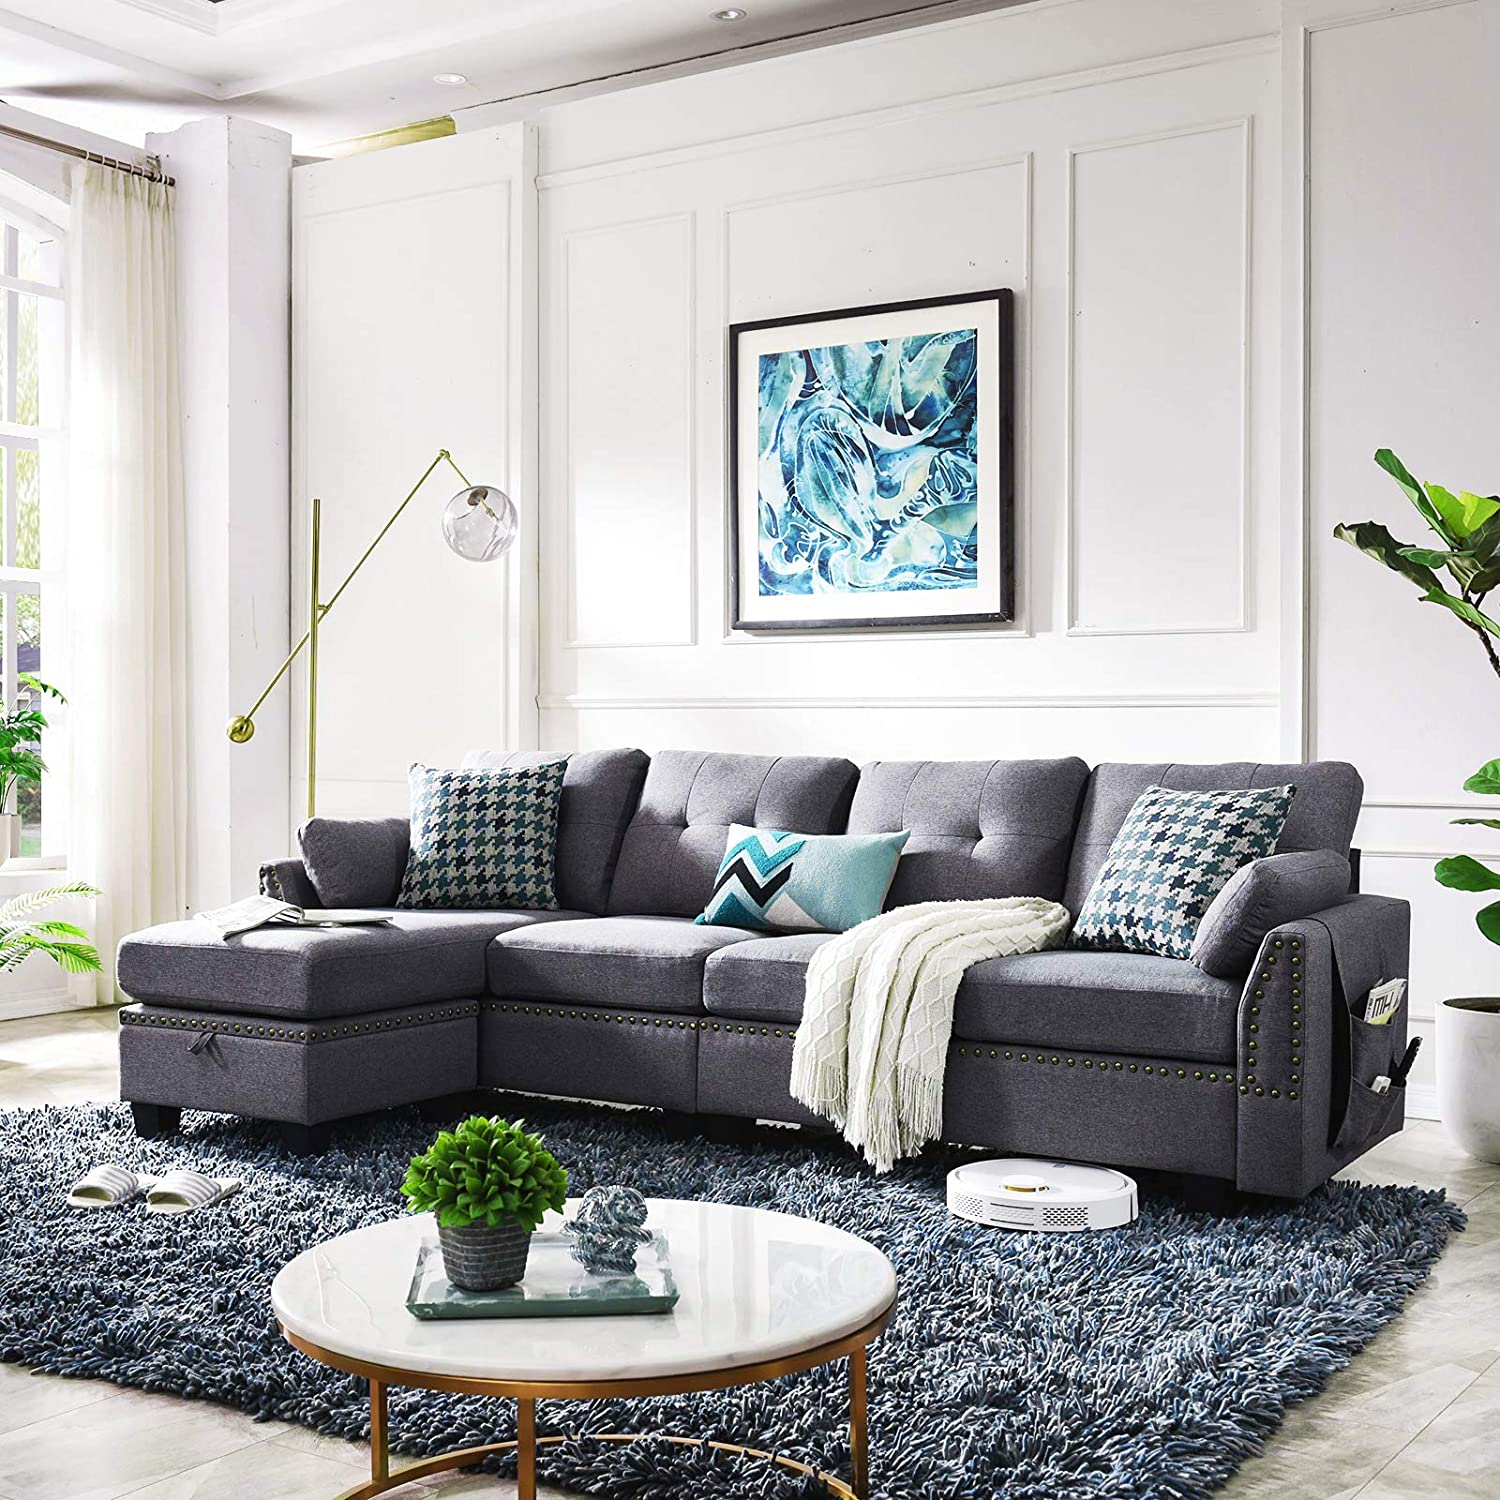 Living Room 4 Seat Sofas Sectional, Living Room L Shaped Sofa